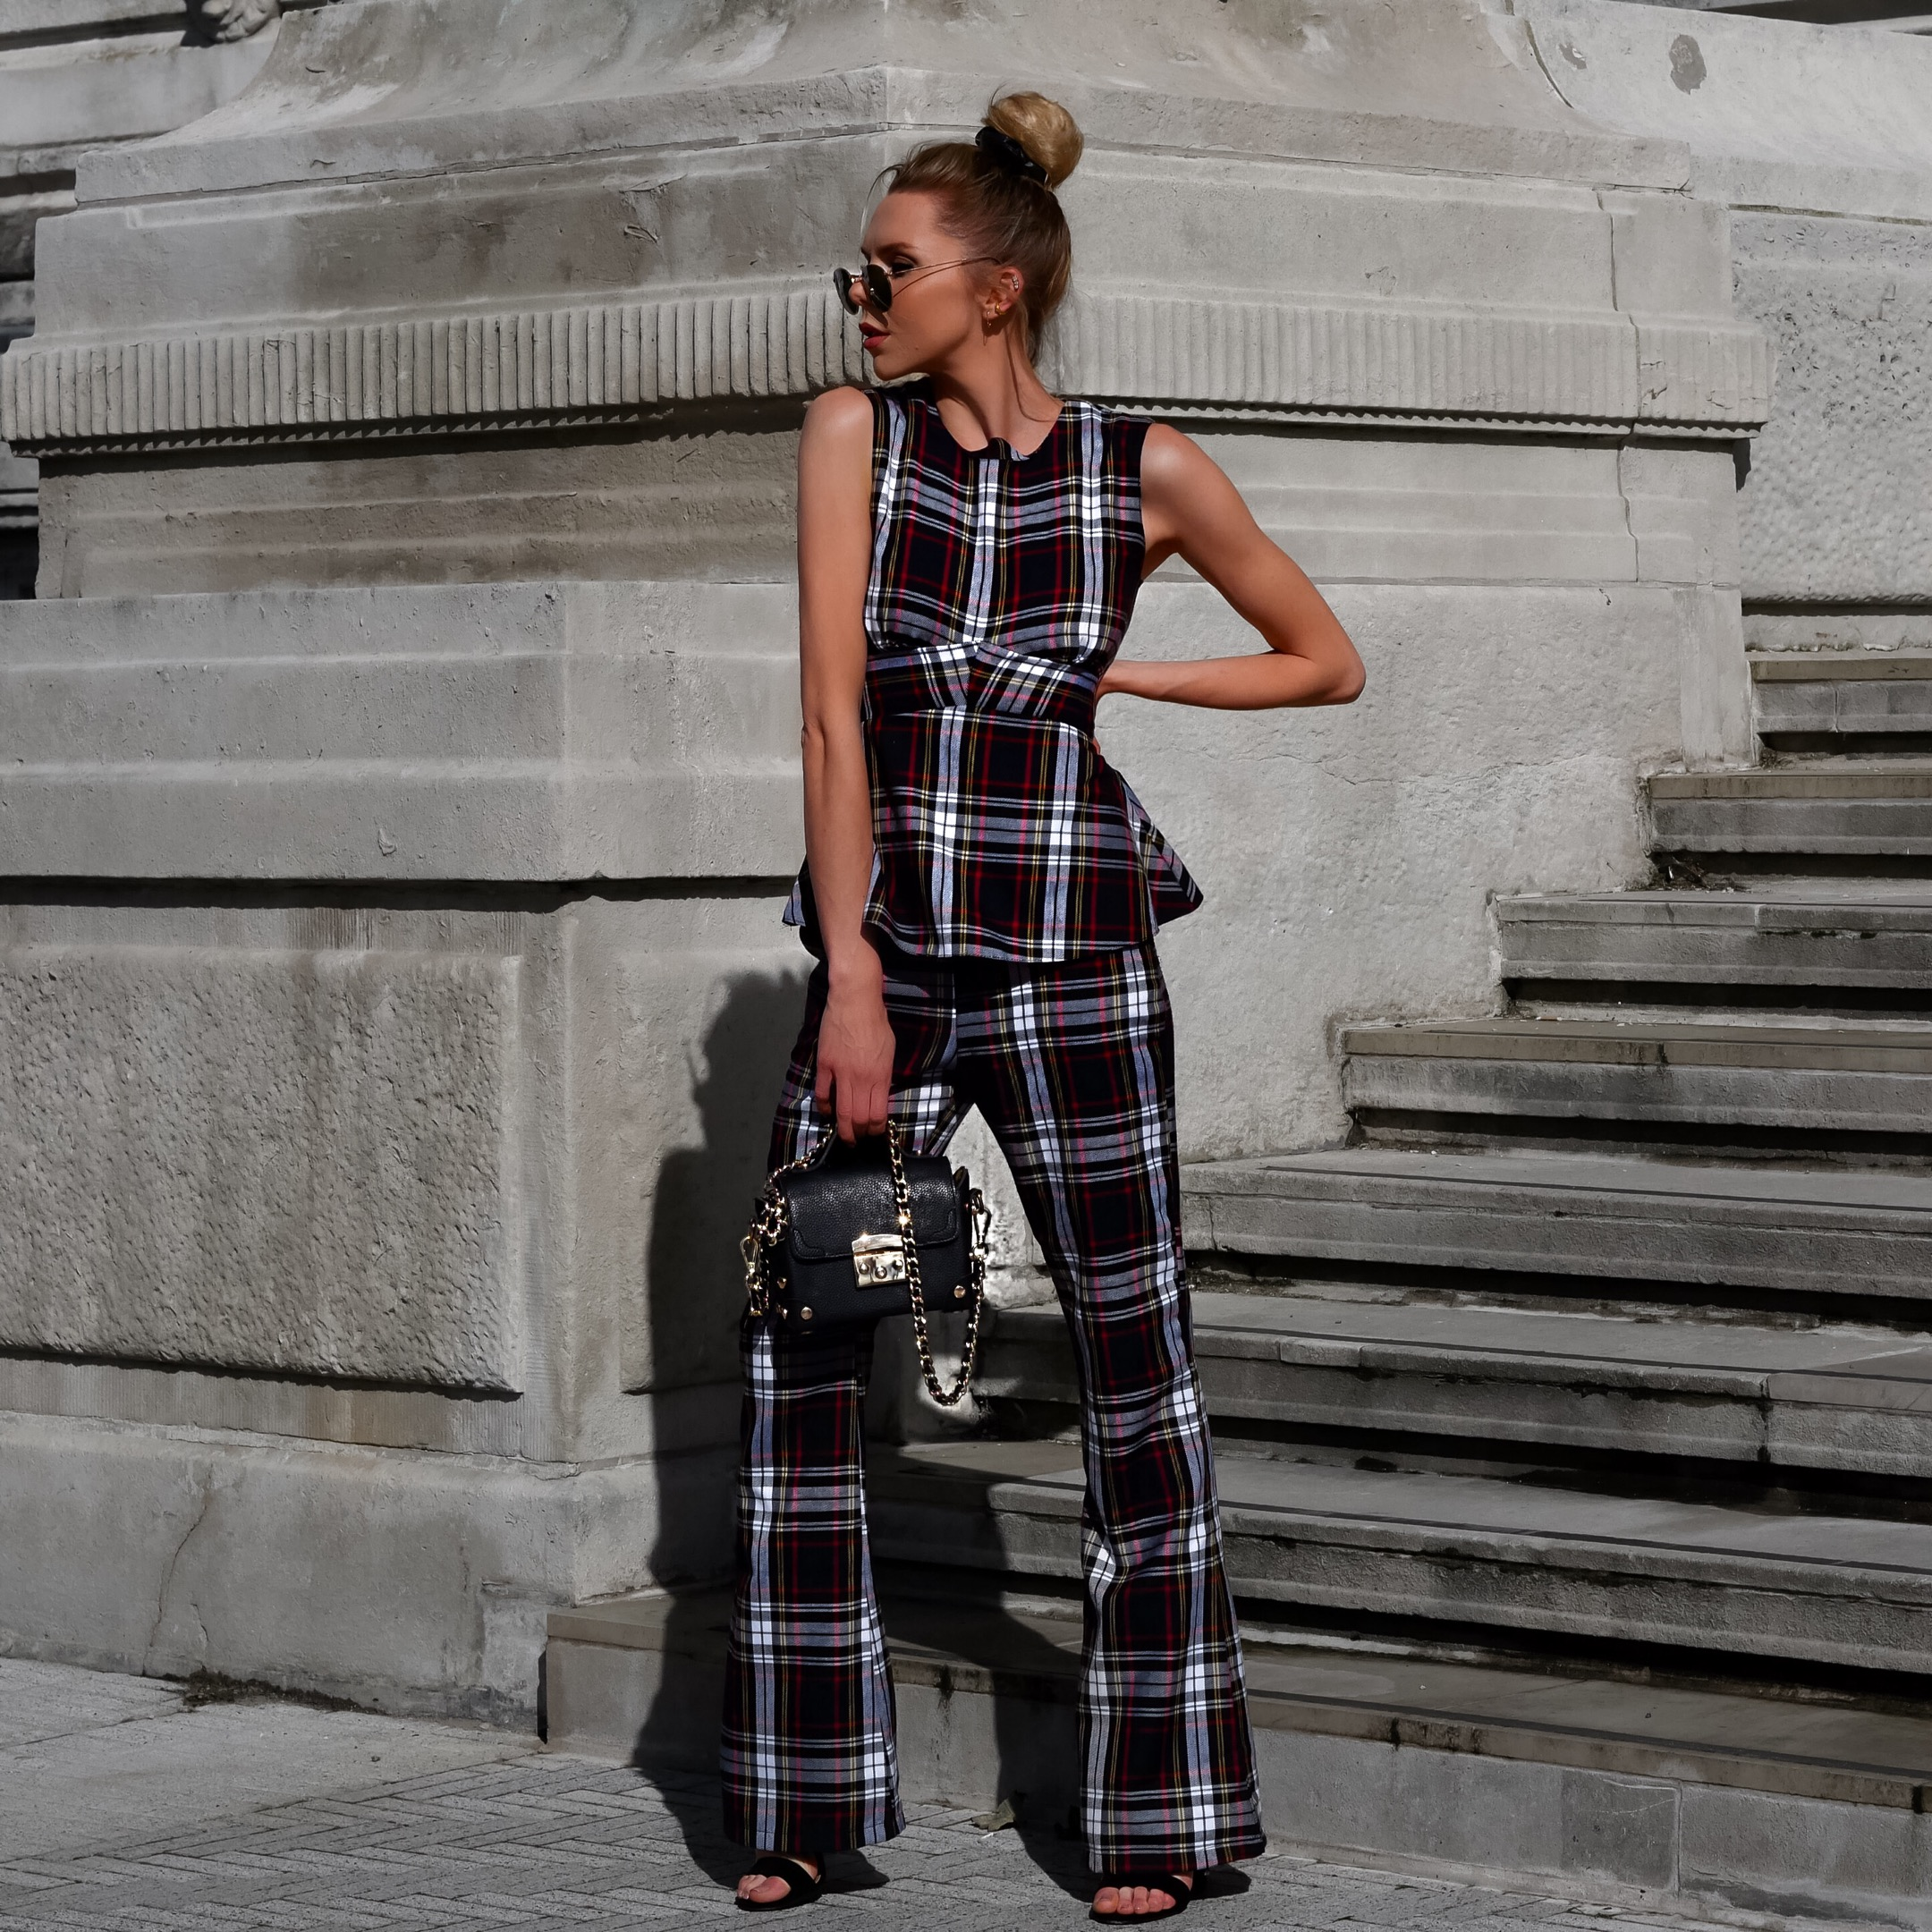 MILAN, MILAN FASHION WEEK, MFW 2107,MFW, MILAN FASHION WEEK 2017, MFW SS18, SS18, UK FASHION BLOGGER, FASHION BLOGGER ENGLAND, LAURA BLAIR, WHAT TO DO IN MILAN, WHAT TO WEAR IN MILAN, WHERE TO STAY IN MILAN, HOTEL MIILAN